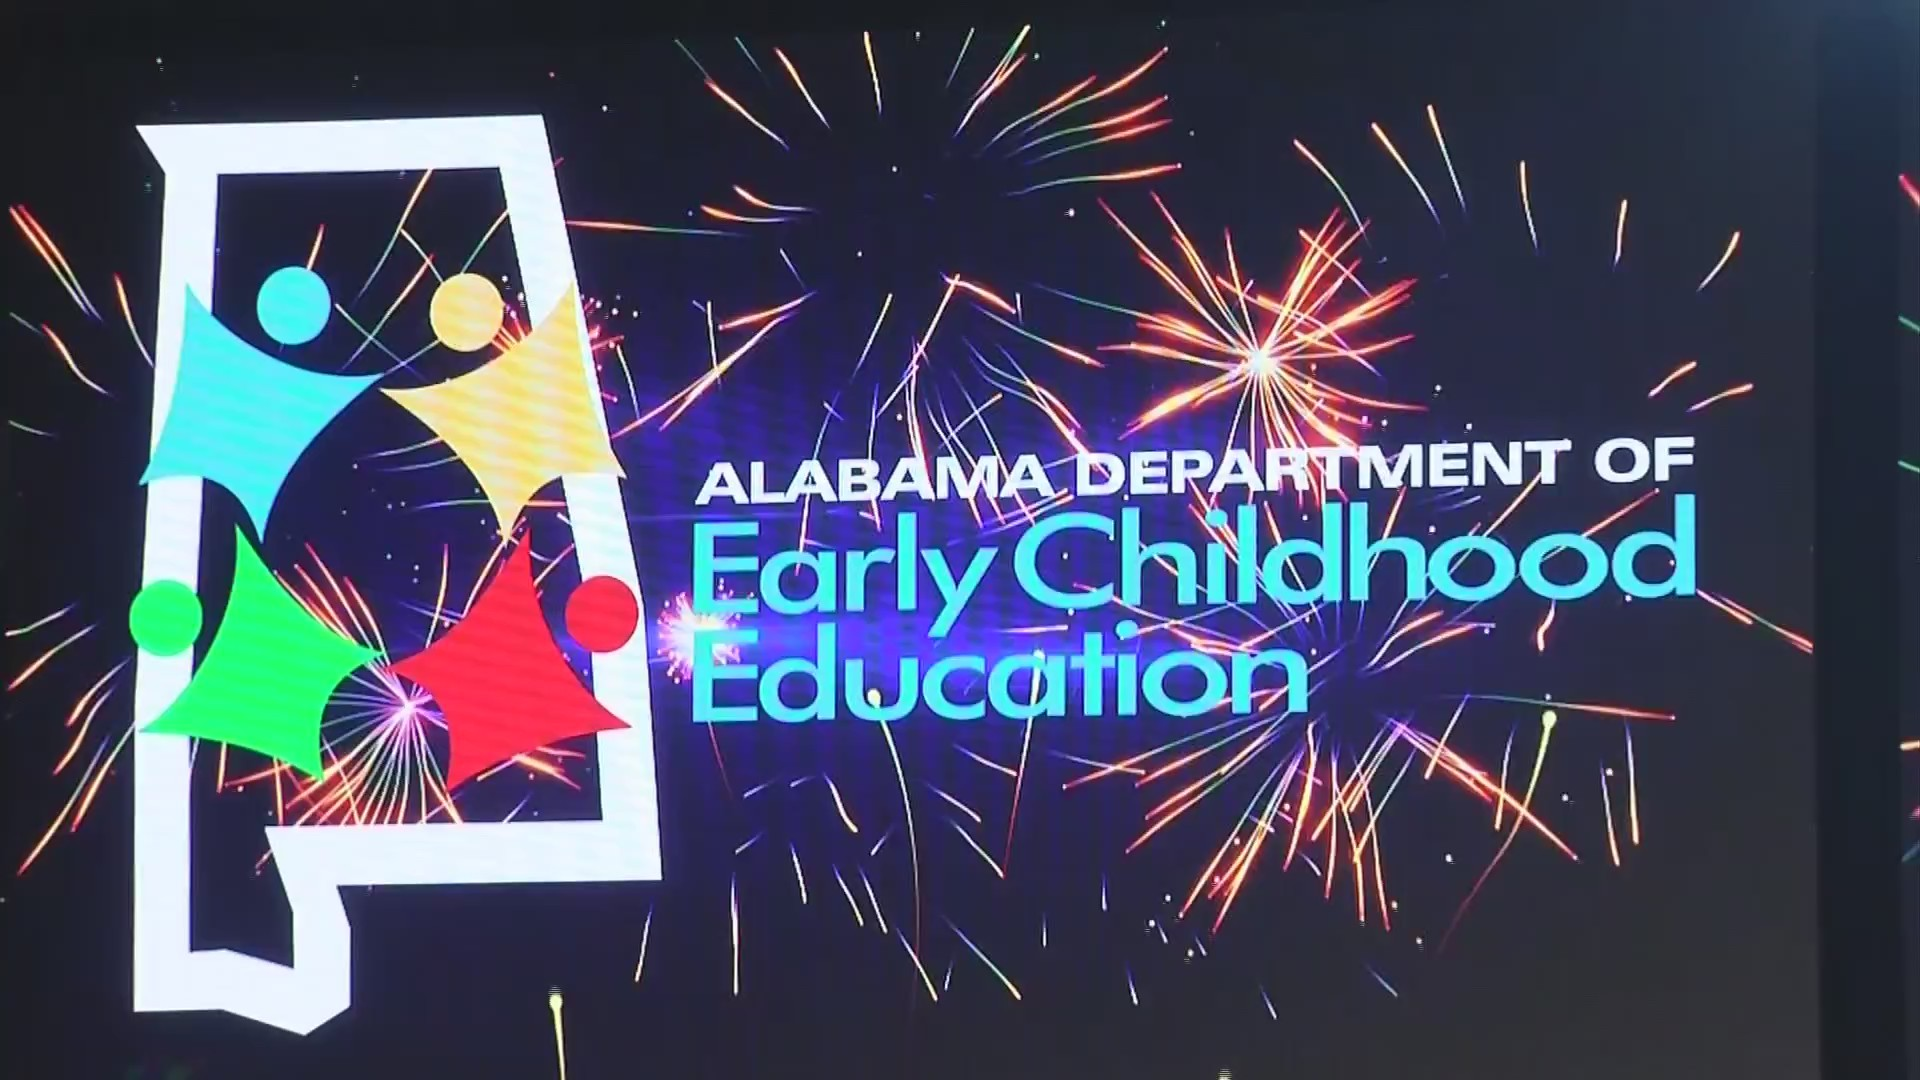 VIDEO: Governor Ivey speaks at Early Childhood Education Conference in Mobile